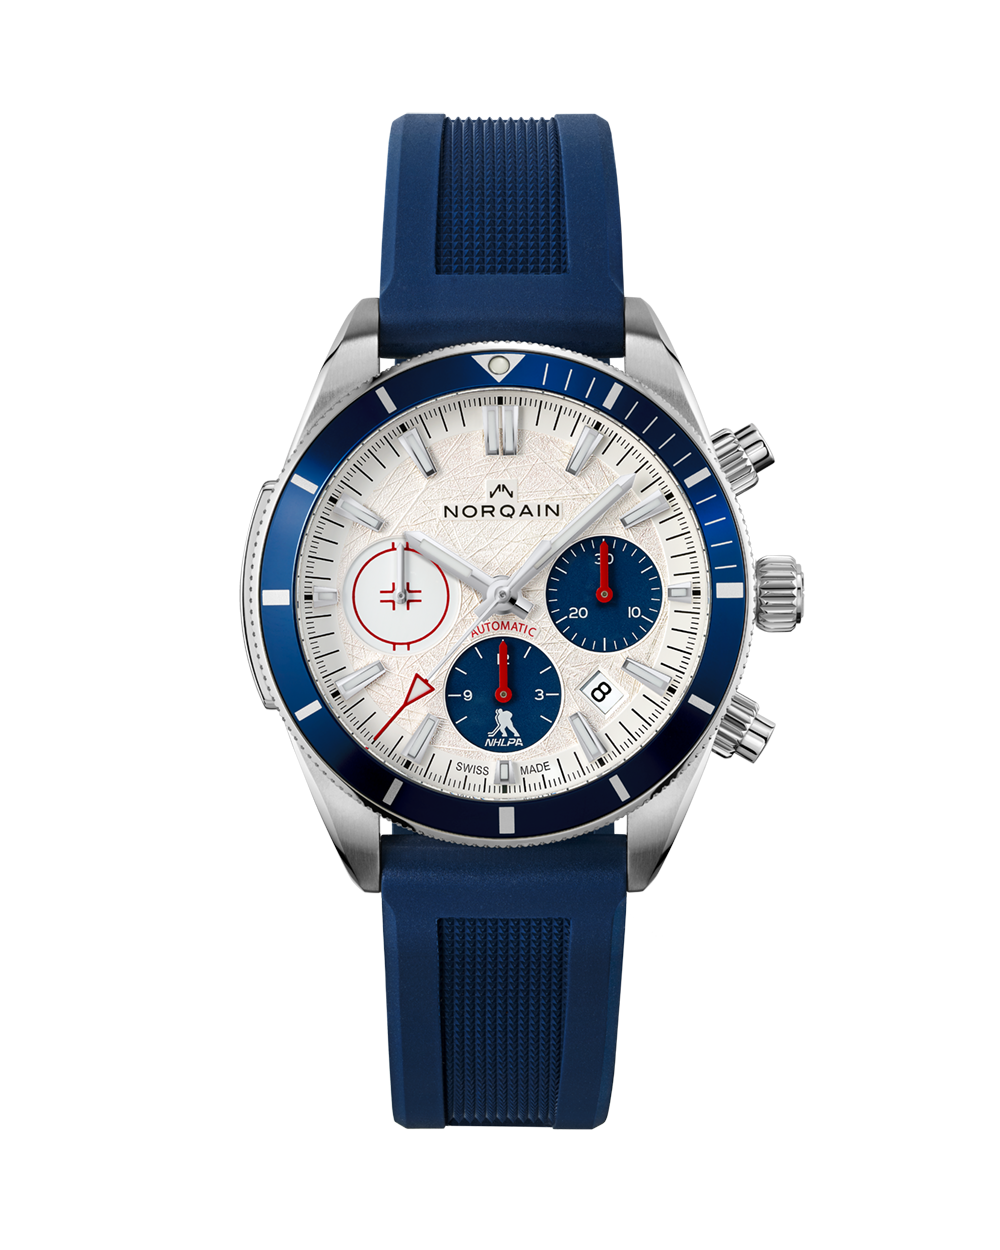 Norqain Adventure Sport Chrono NHLPA Limited Edition Auto (White Dial / 41mm)